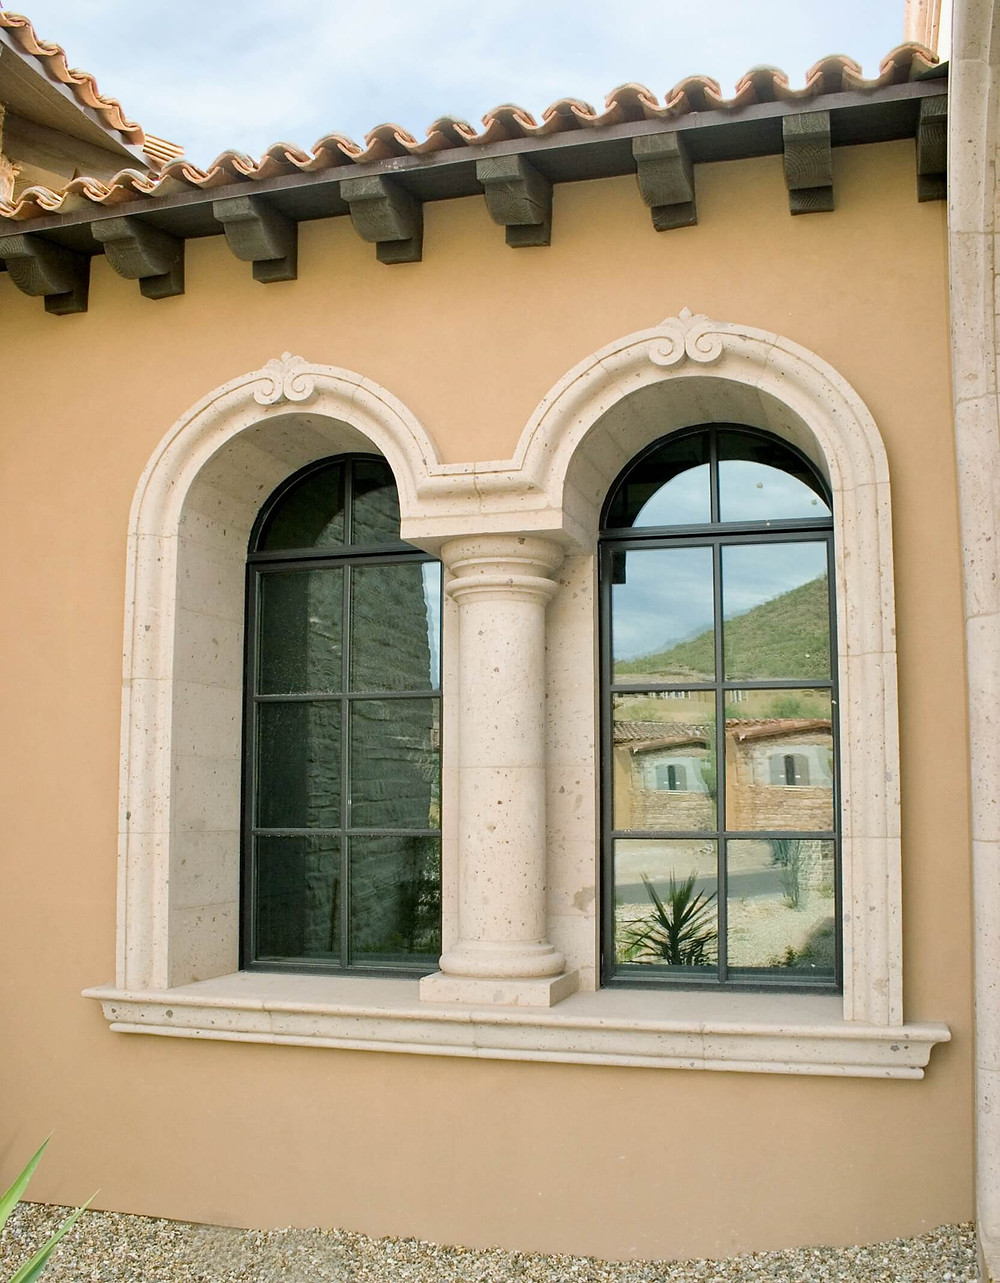 stone window surround and sill with column